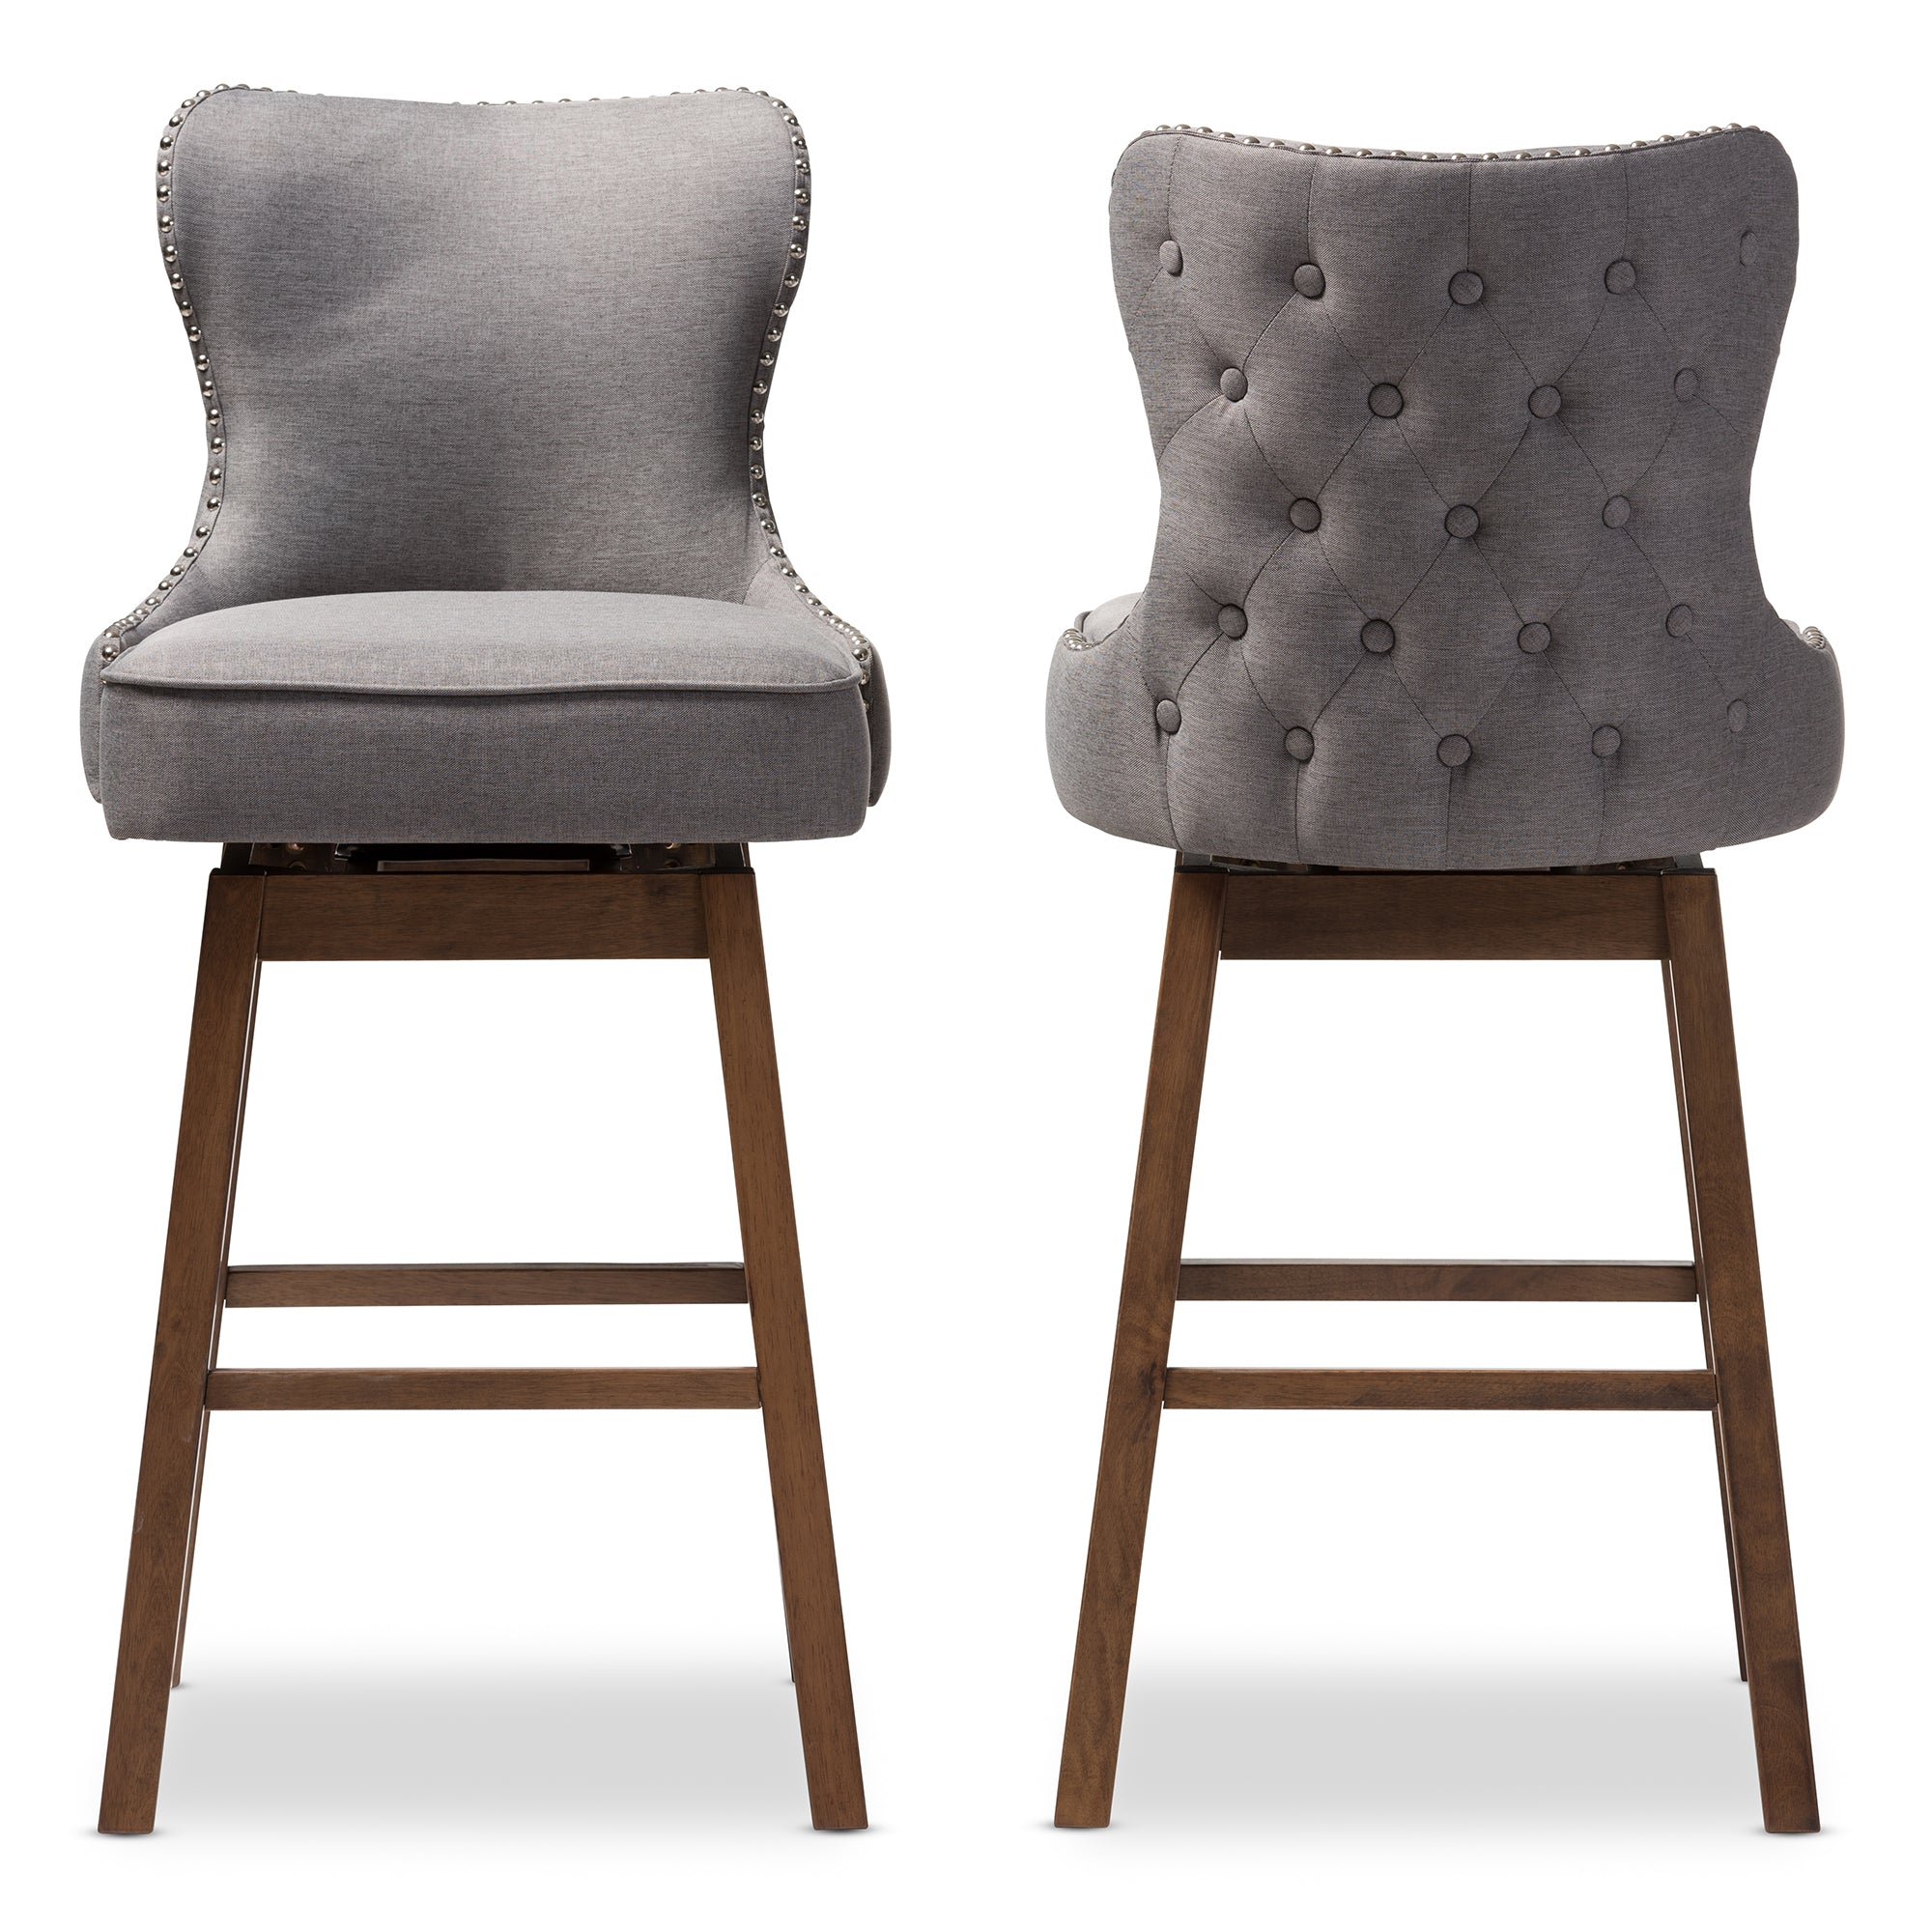 Gradisca Modern and Contemporary Brown Wood Finishing and Grey Fabric Button-Tufted Upholstered Swivel Barstool